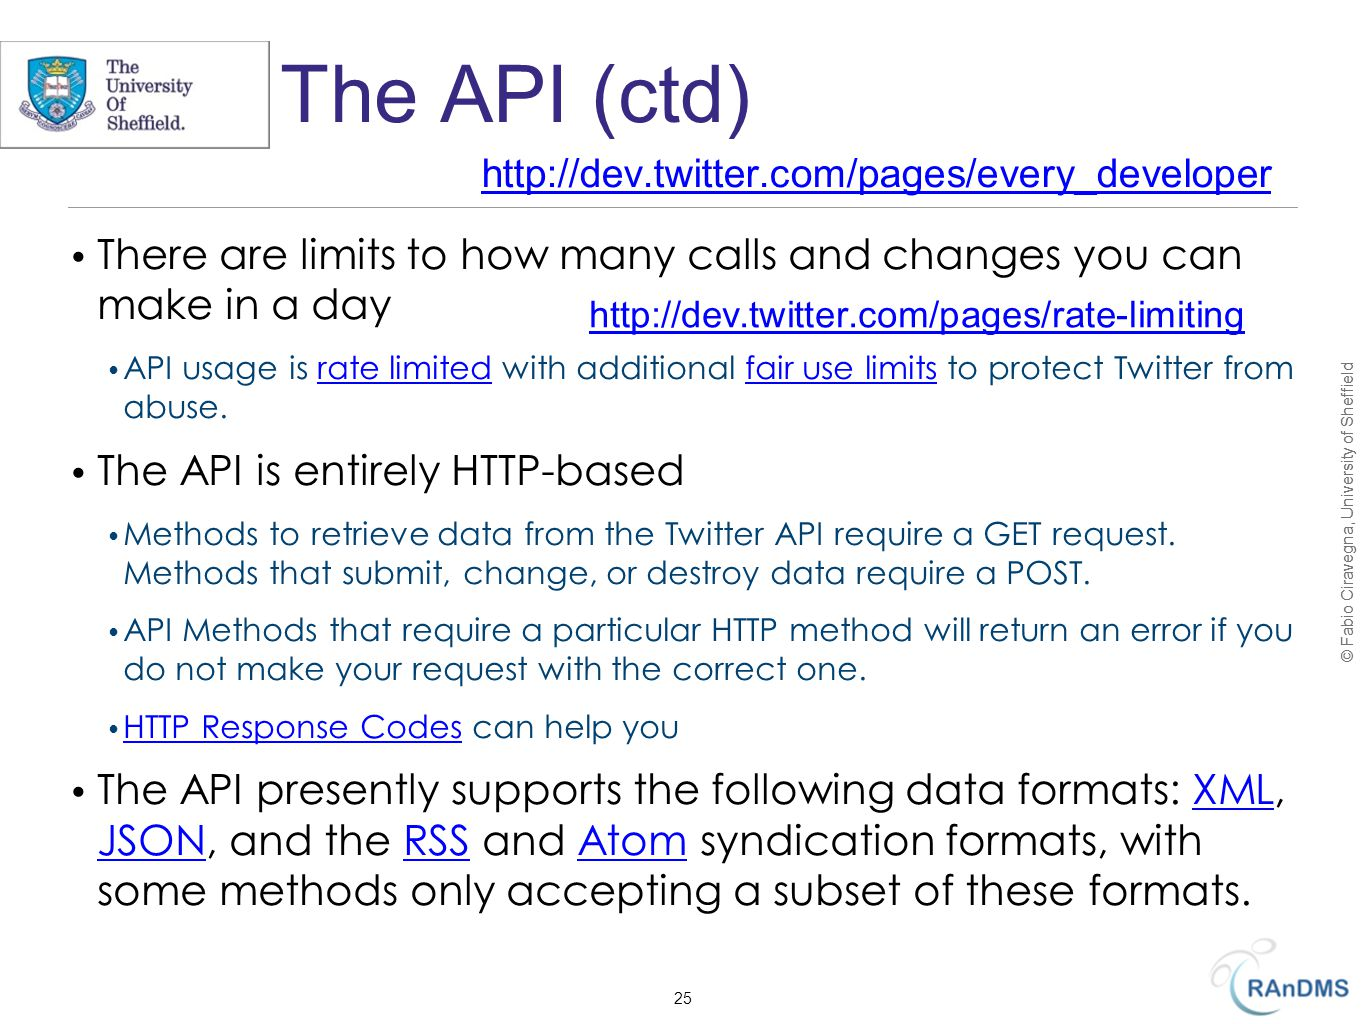 © Fabio Ciravegna, University of Sheffield The API (ctd) There are limits to how many calls and changes you can make in a day API usage is rate limited with additional fair use limits to protect Twitter from abuse.rate limitedfair use limits The API is entirely HTTP-based Methods to retrieve data from the Twitter API require a GET request.